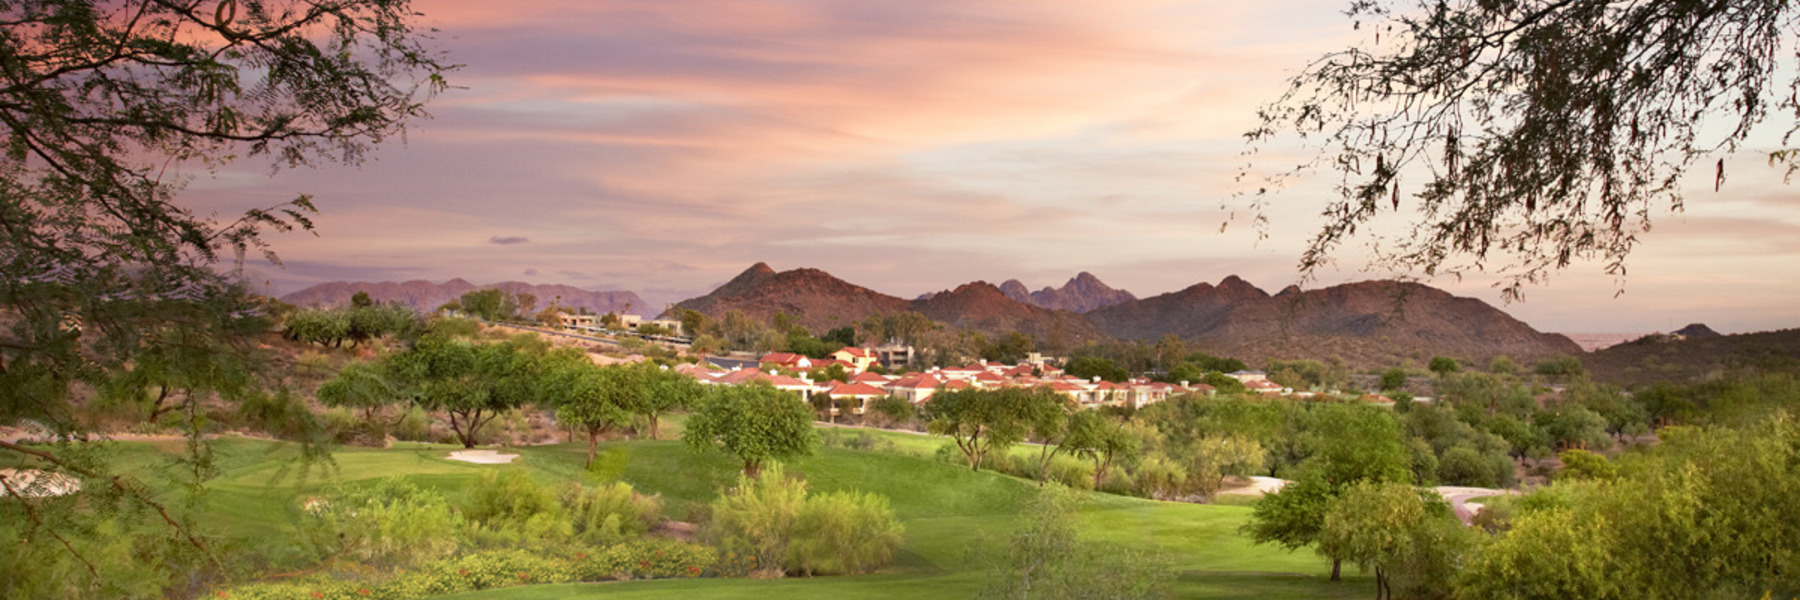 Golf Vacation Package - No need to share rooms! Villa + Scottsdale